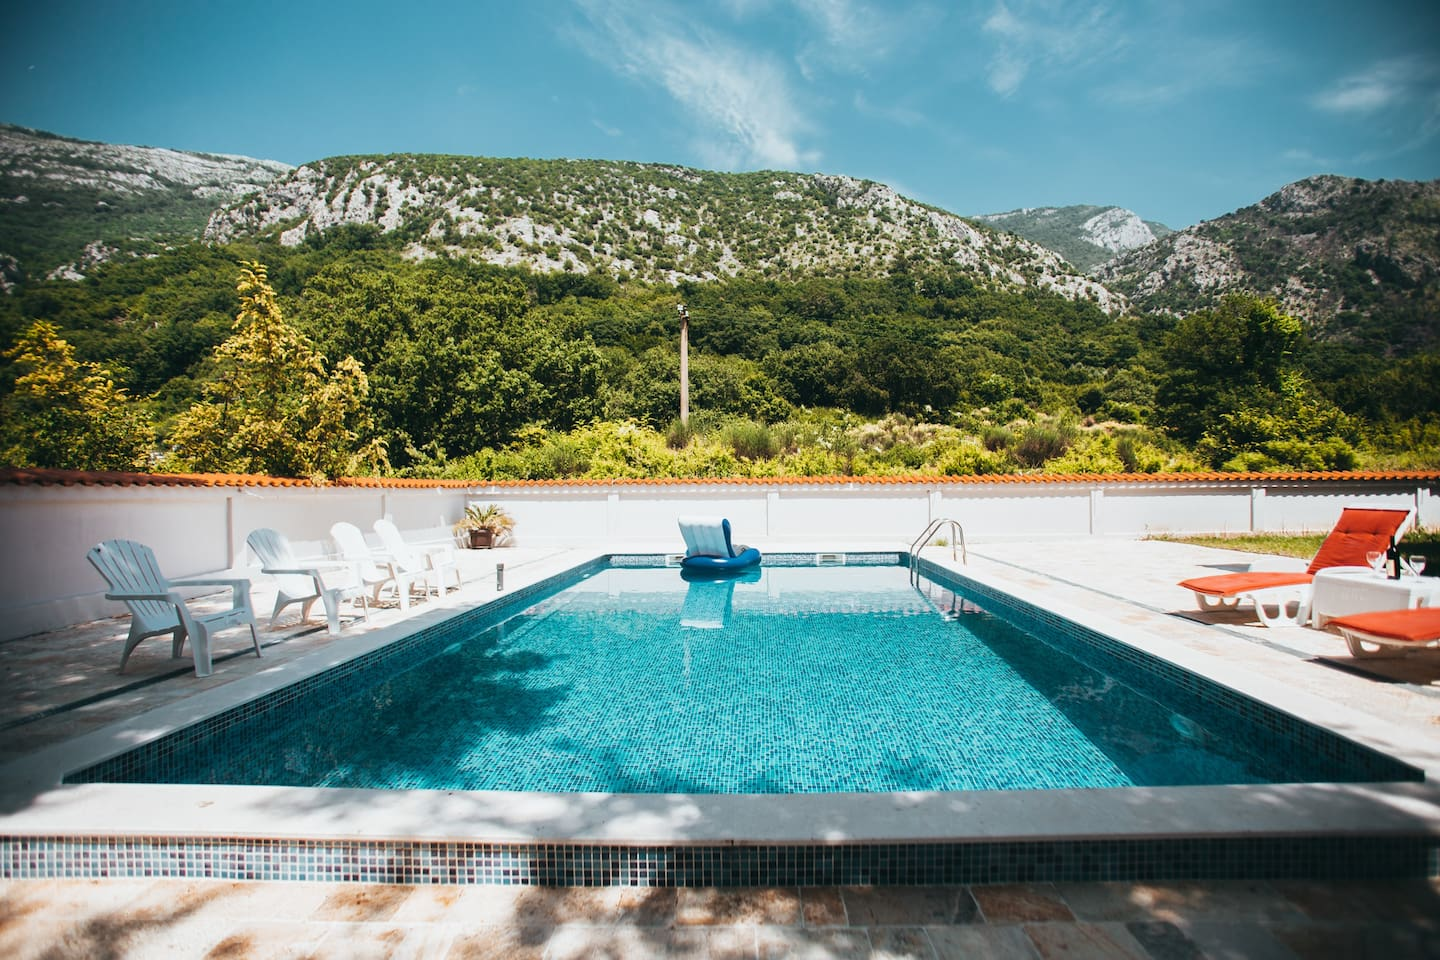 Enjoy your summer days by the pool